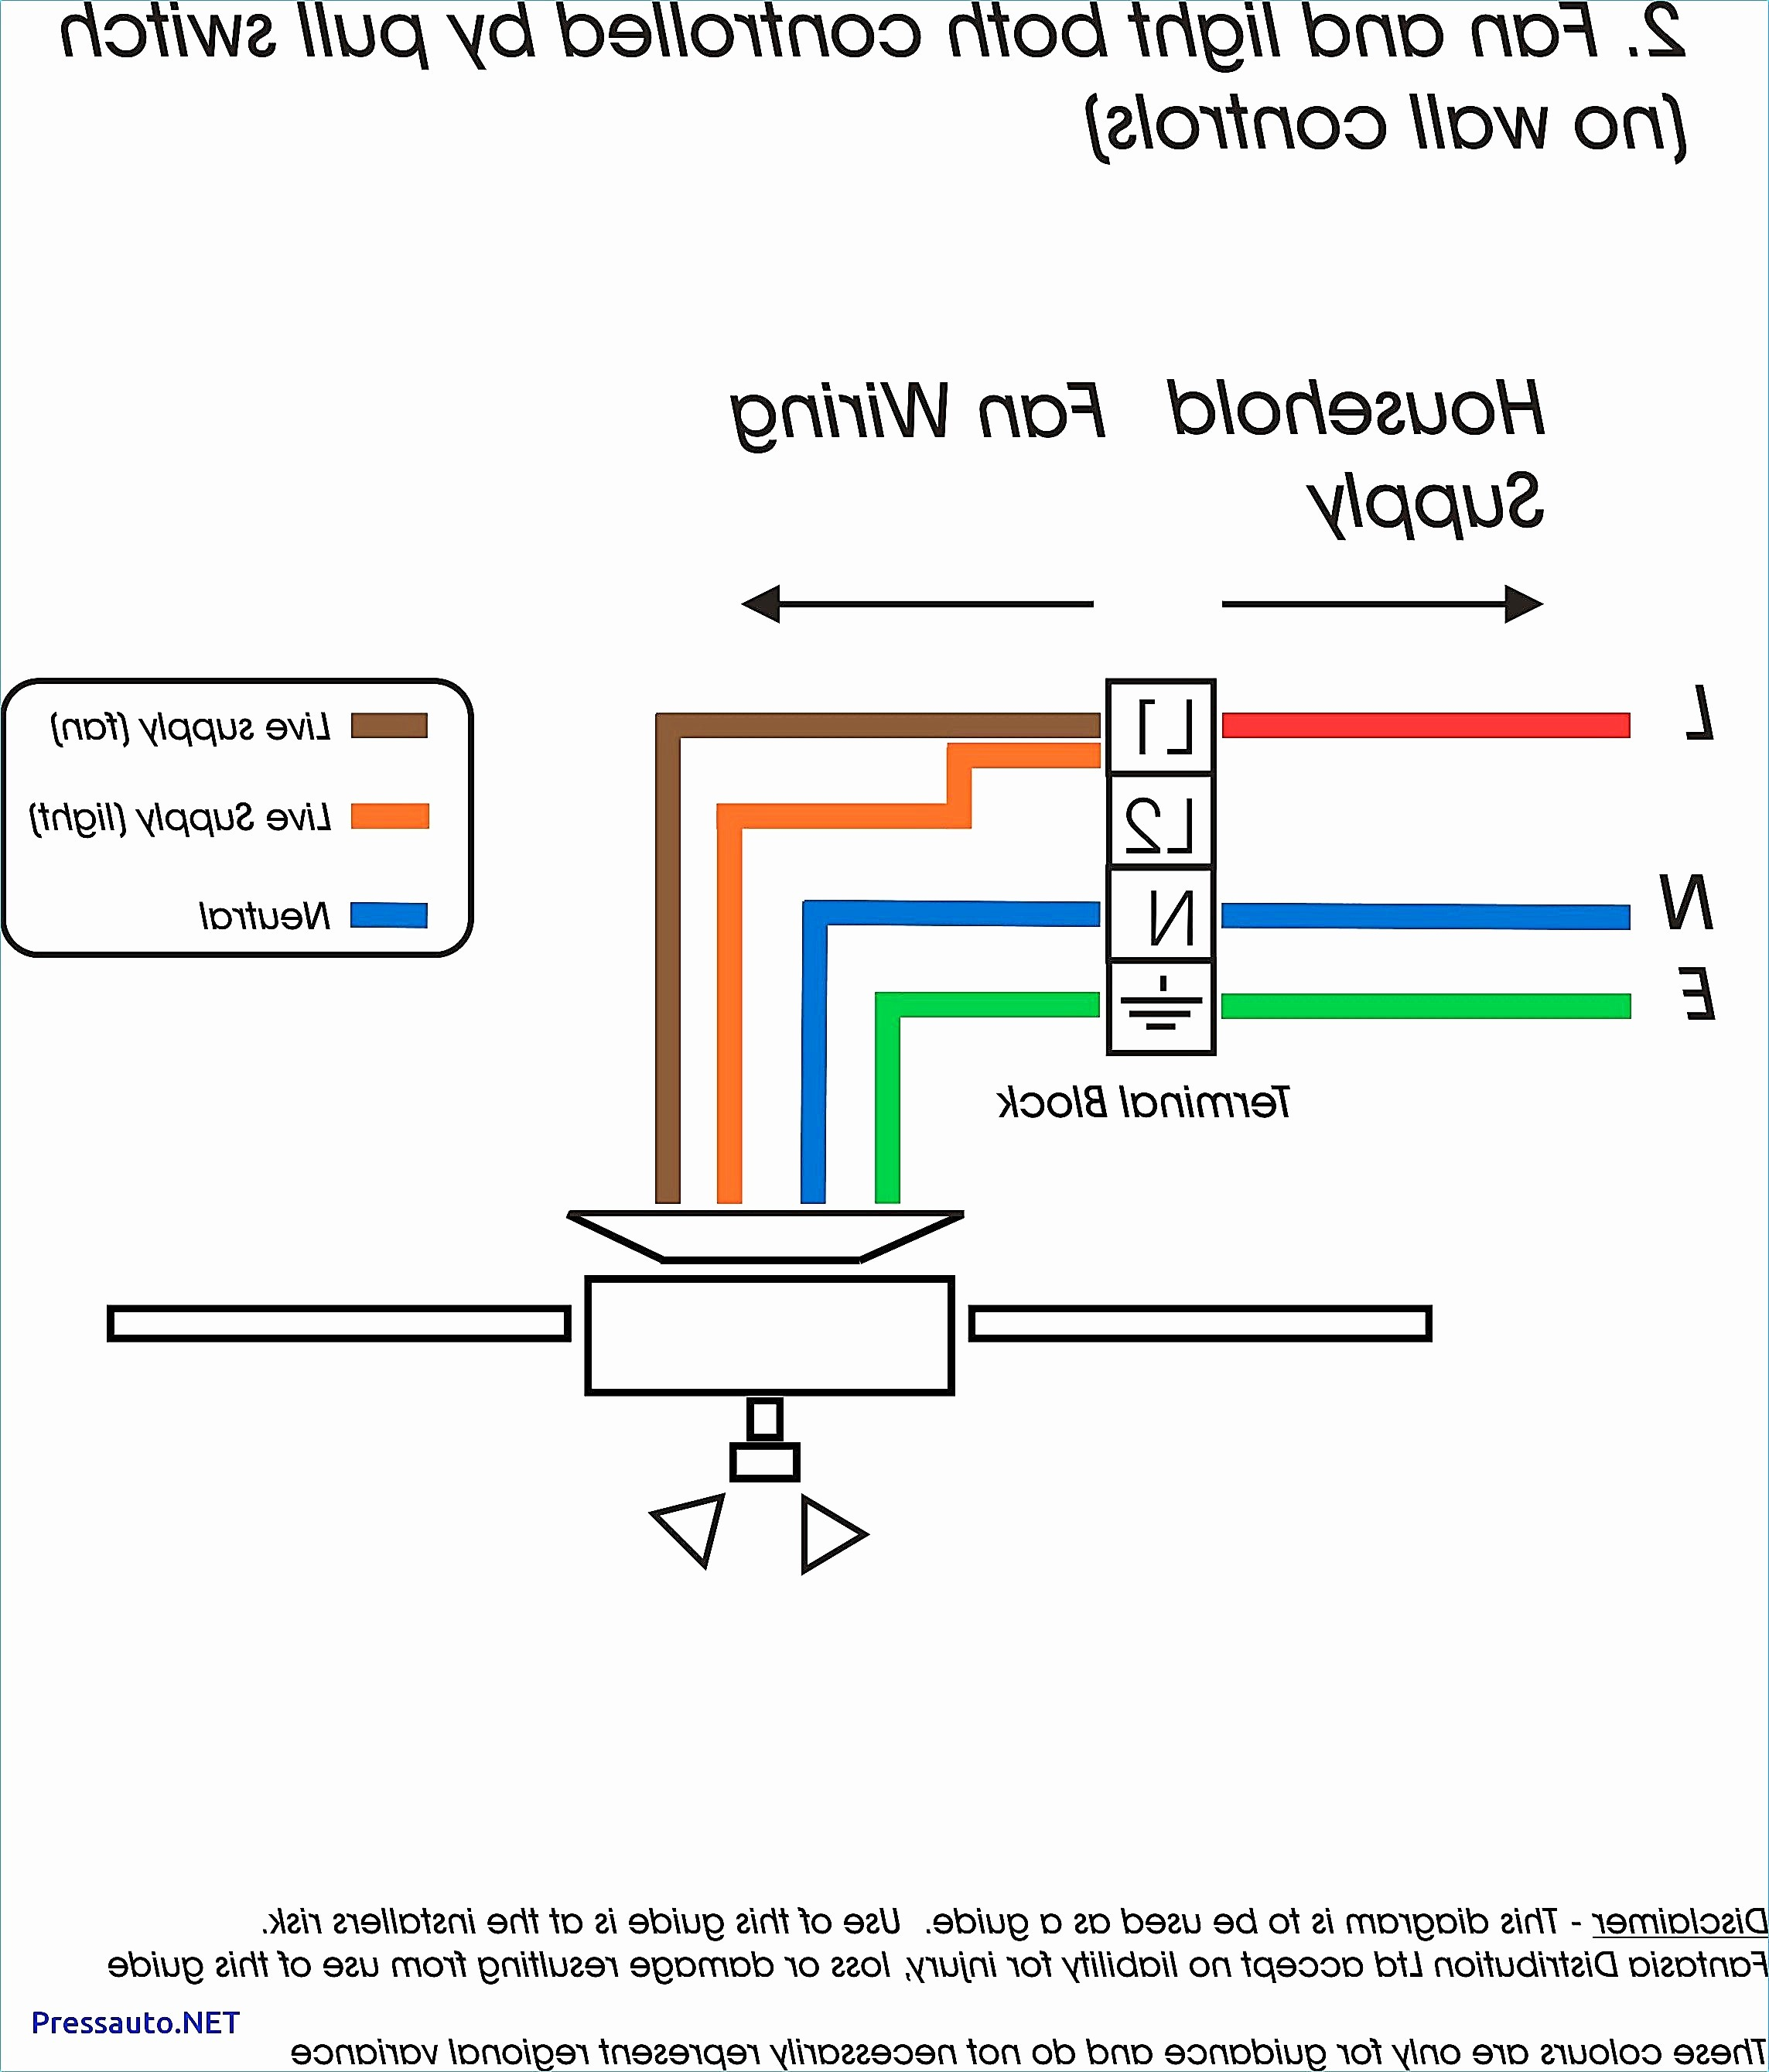 cat 6 wiring diagram for wall plates Collection-Wiring Diagram for Home Network Inspirationa Cat 6 Wiring Diagram for Wall Plates 20-g